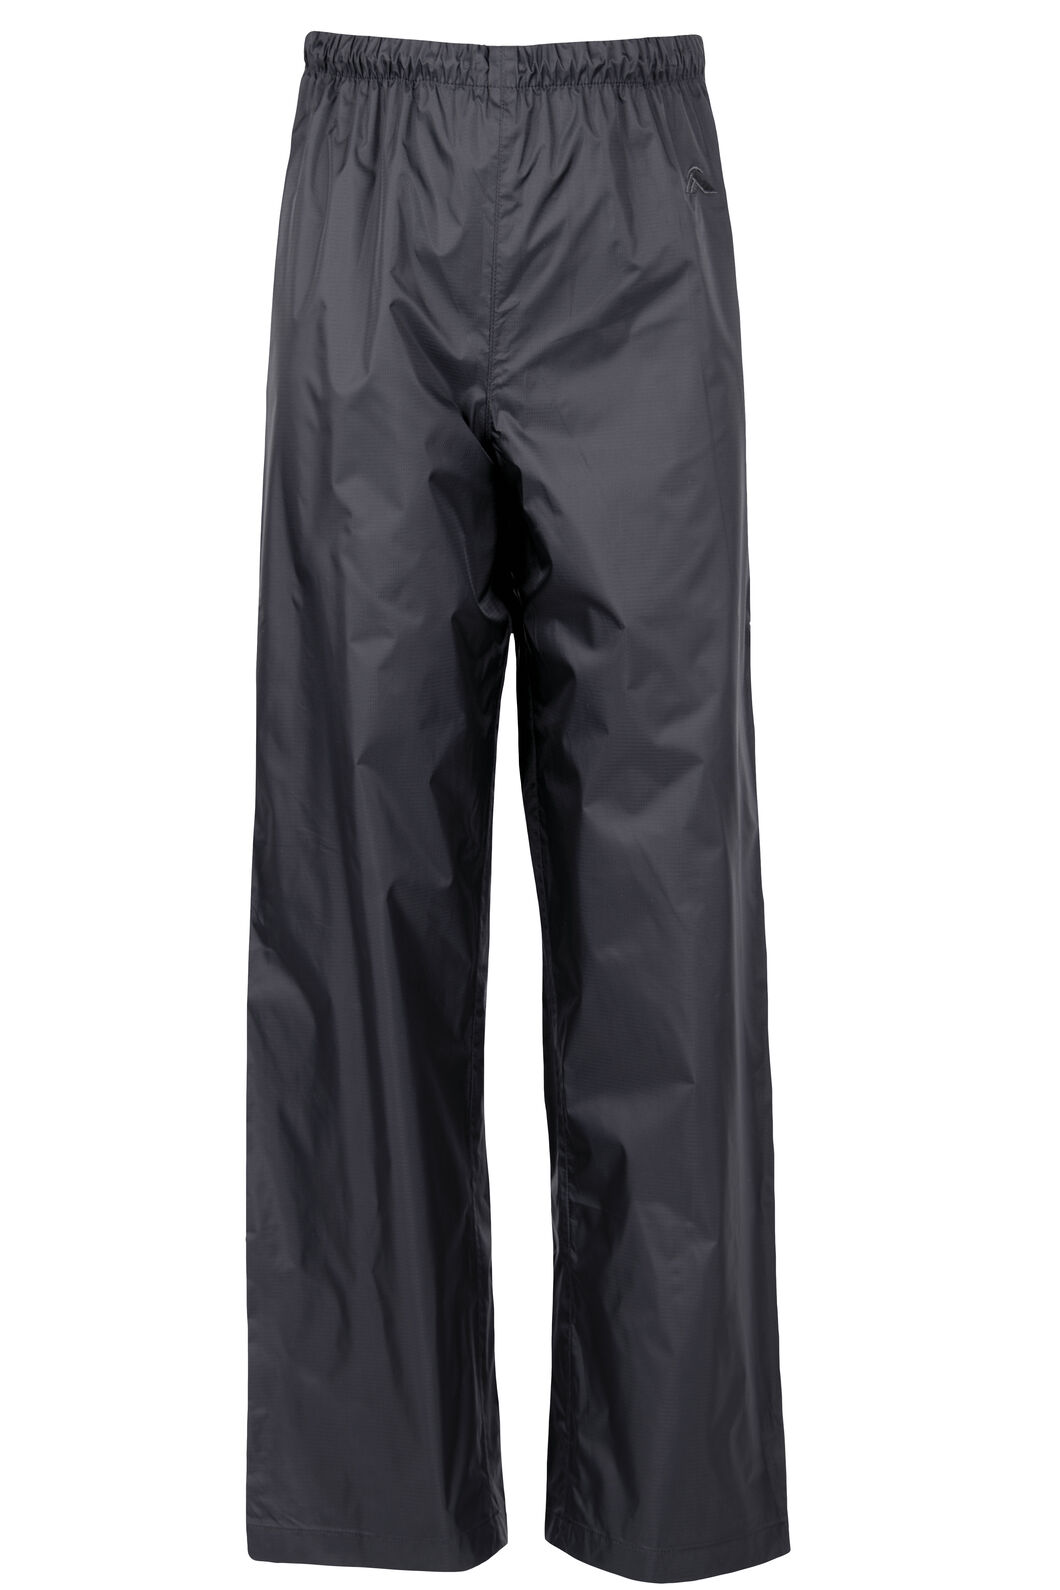 Macpac Jetstream Rain Pants - Women's, Black, hi-res